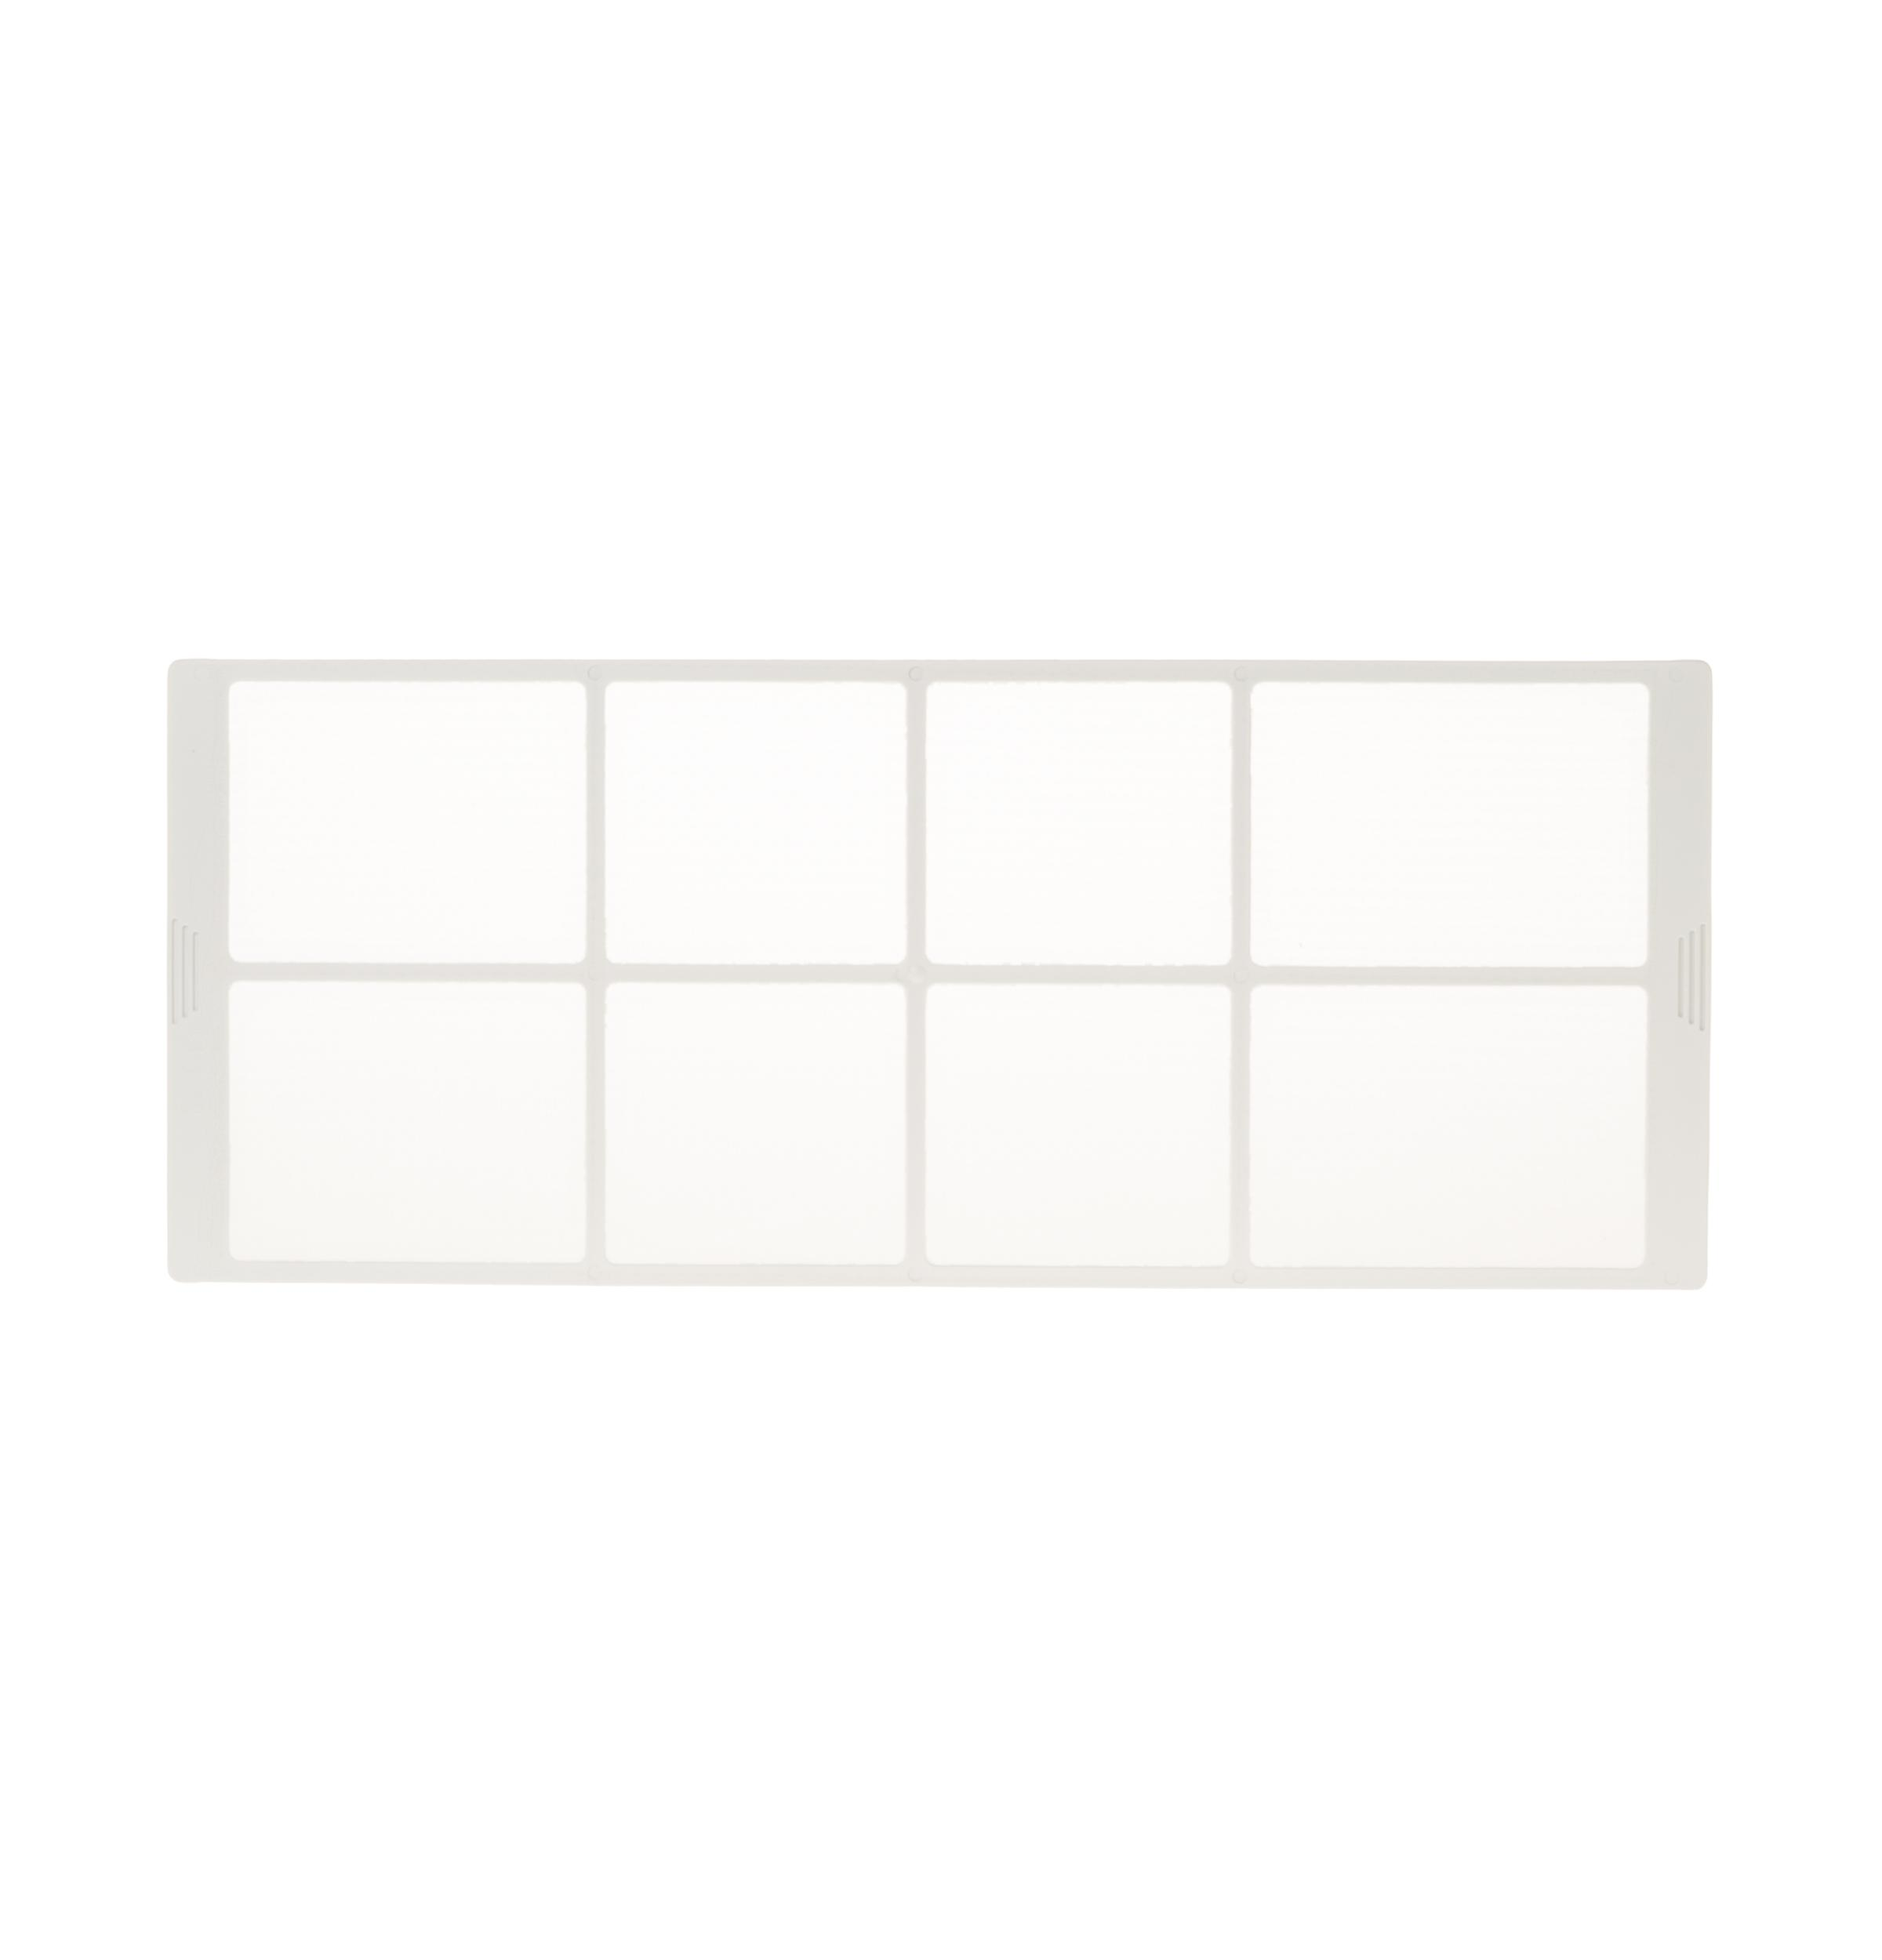 Wj71x20614 Ge Room Air Conditioner Filter Fred S Appliance